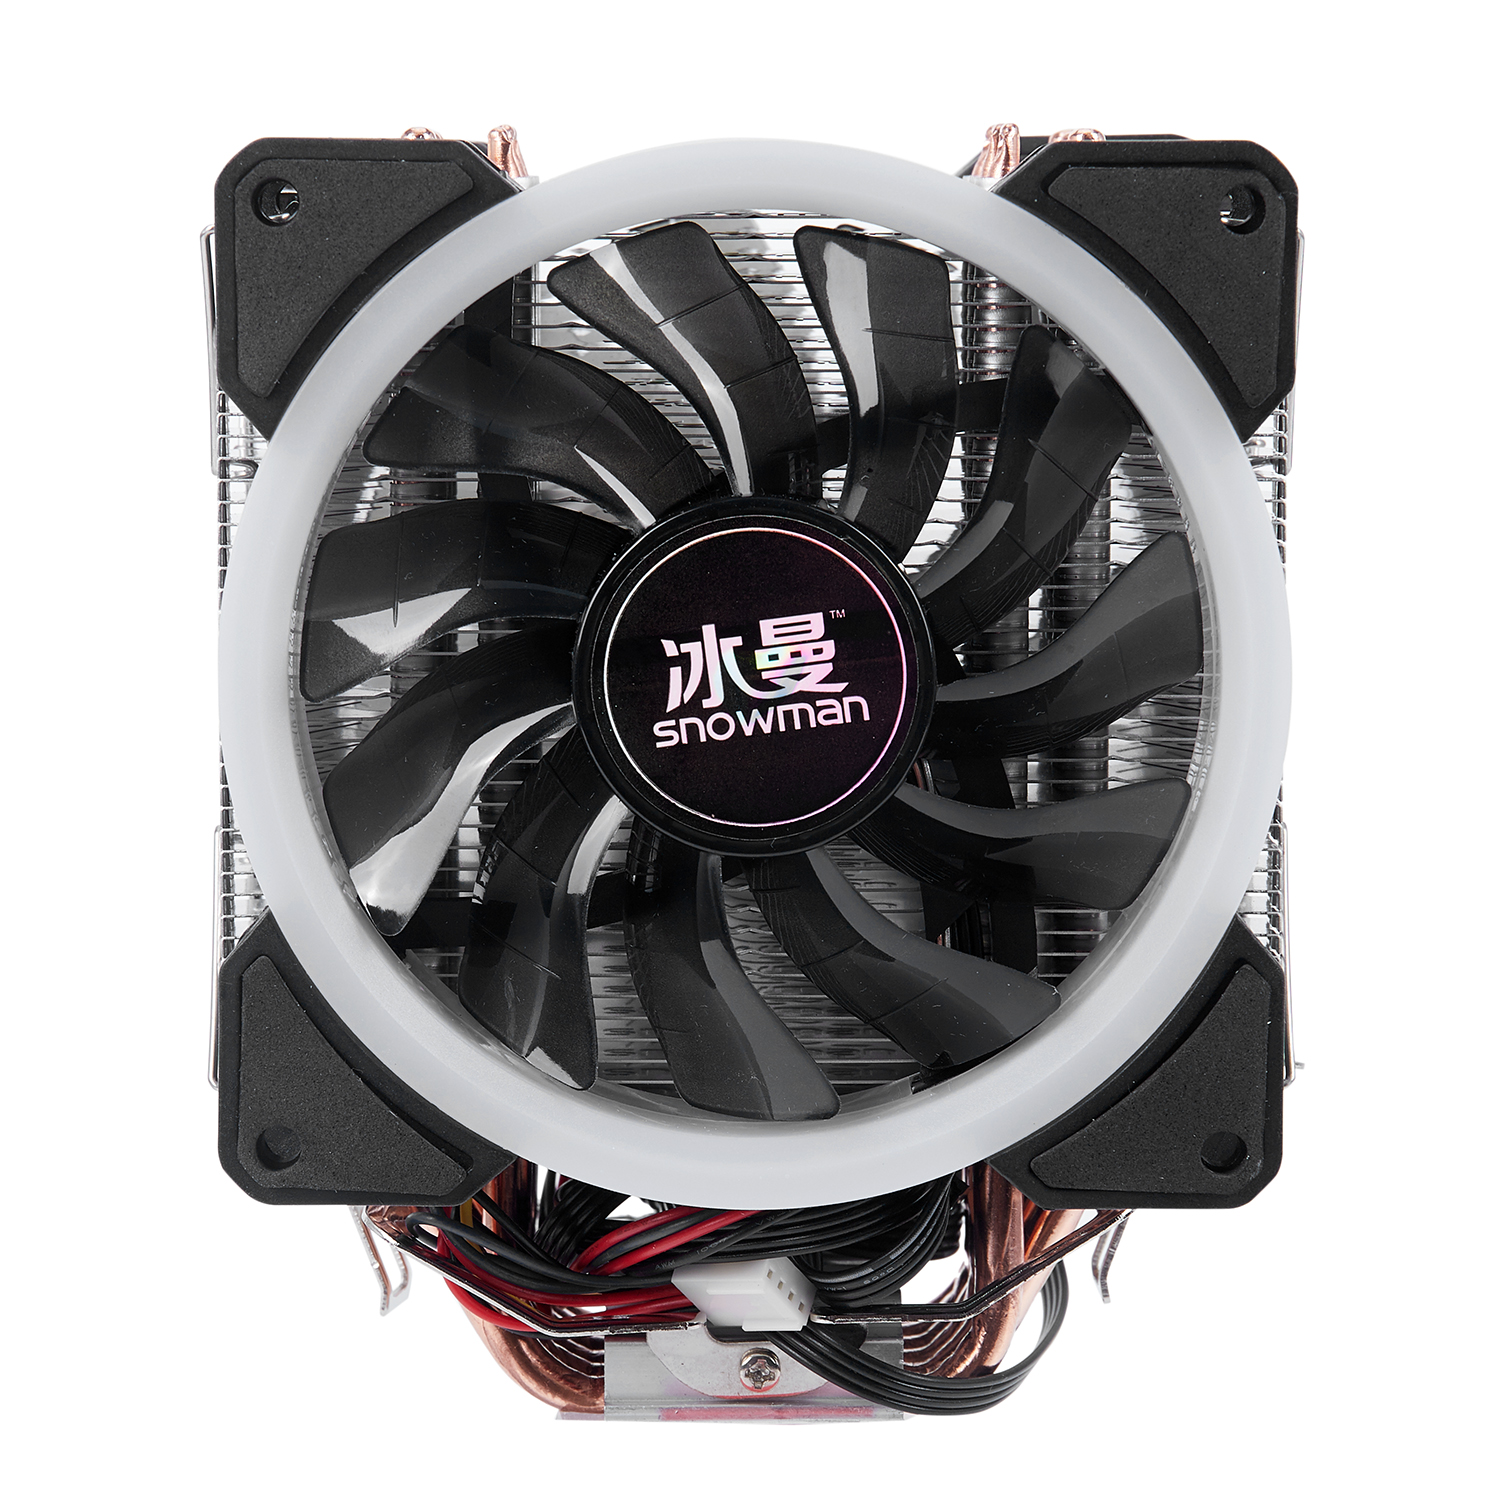 SNOWMAN 4 PIN CPU cooler 6 Heat-pipe RGB LED Single Double fans cooling 12 cm fan LGA 775 1151 115X 1366 support Intel AMD image